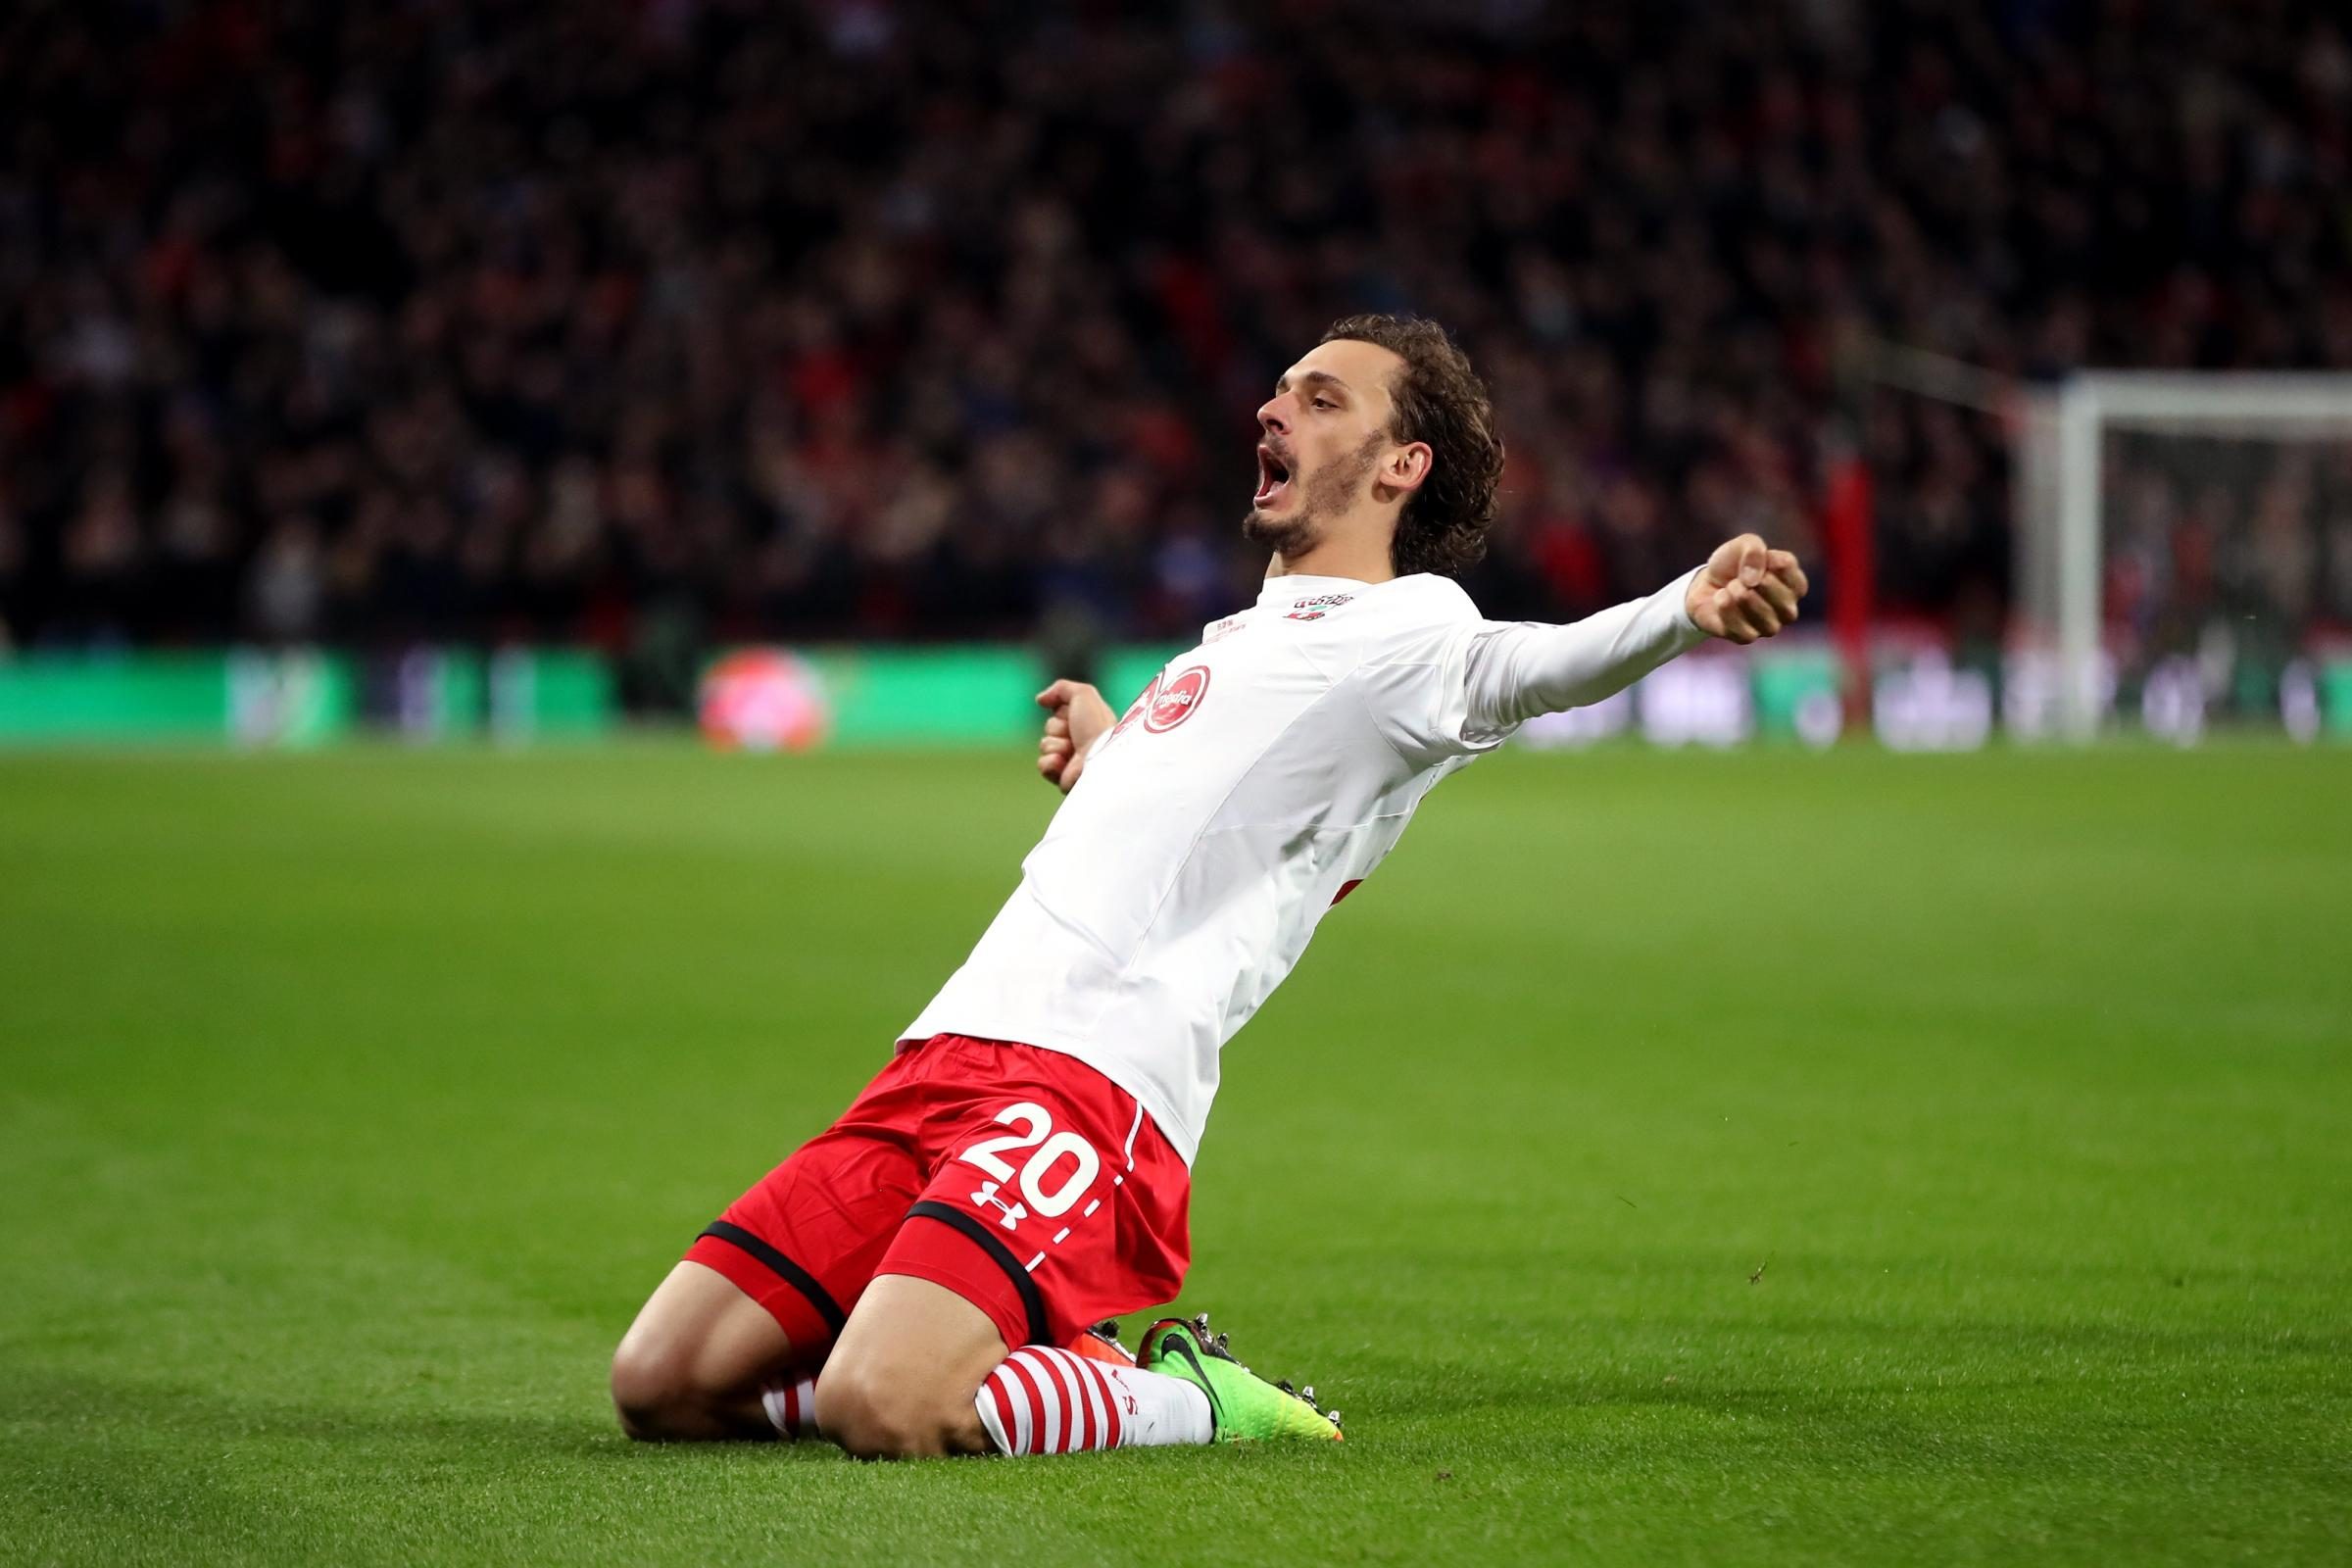 Manolo Gabbiadini scored for Southampton twice in the EFL Cup final